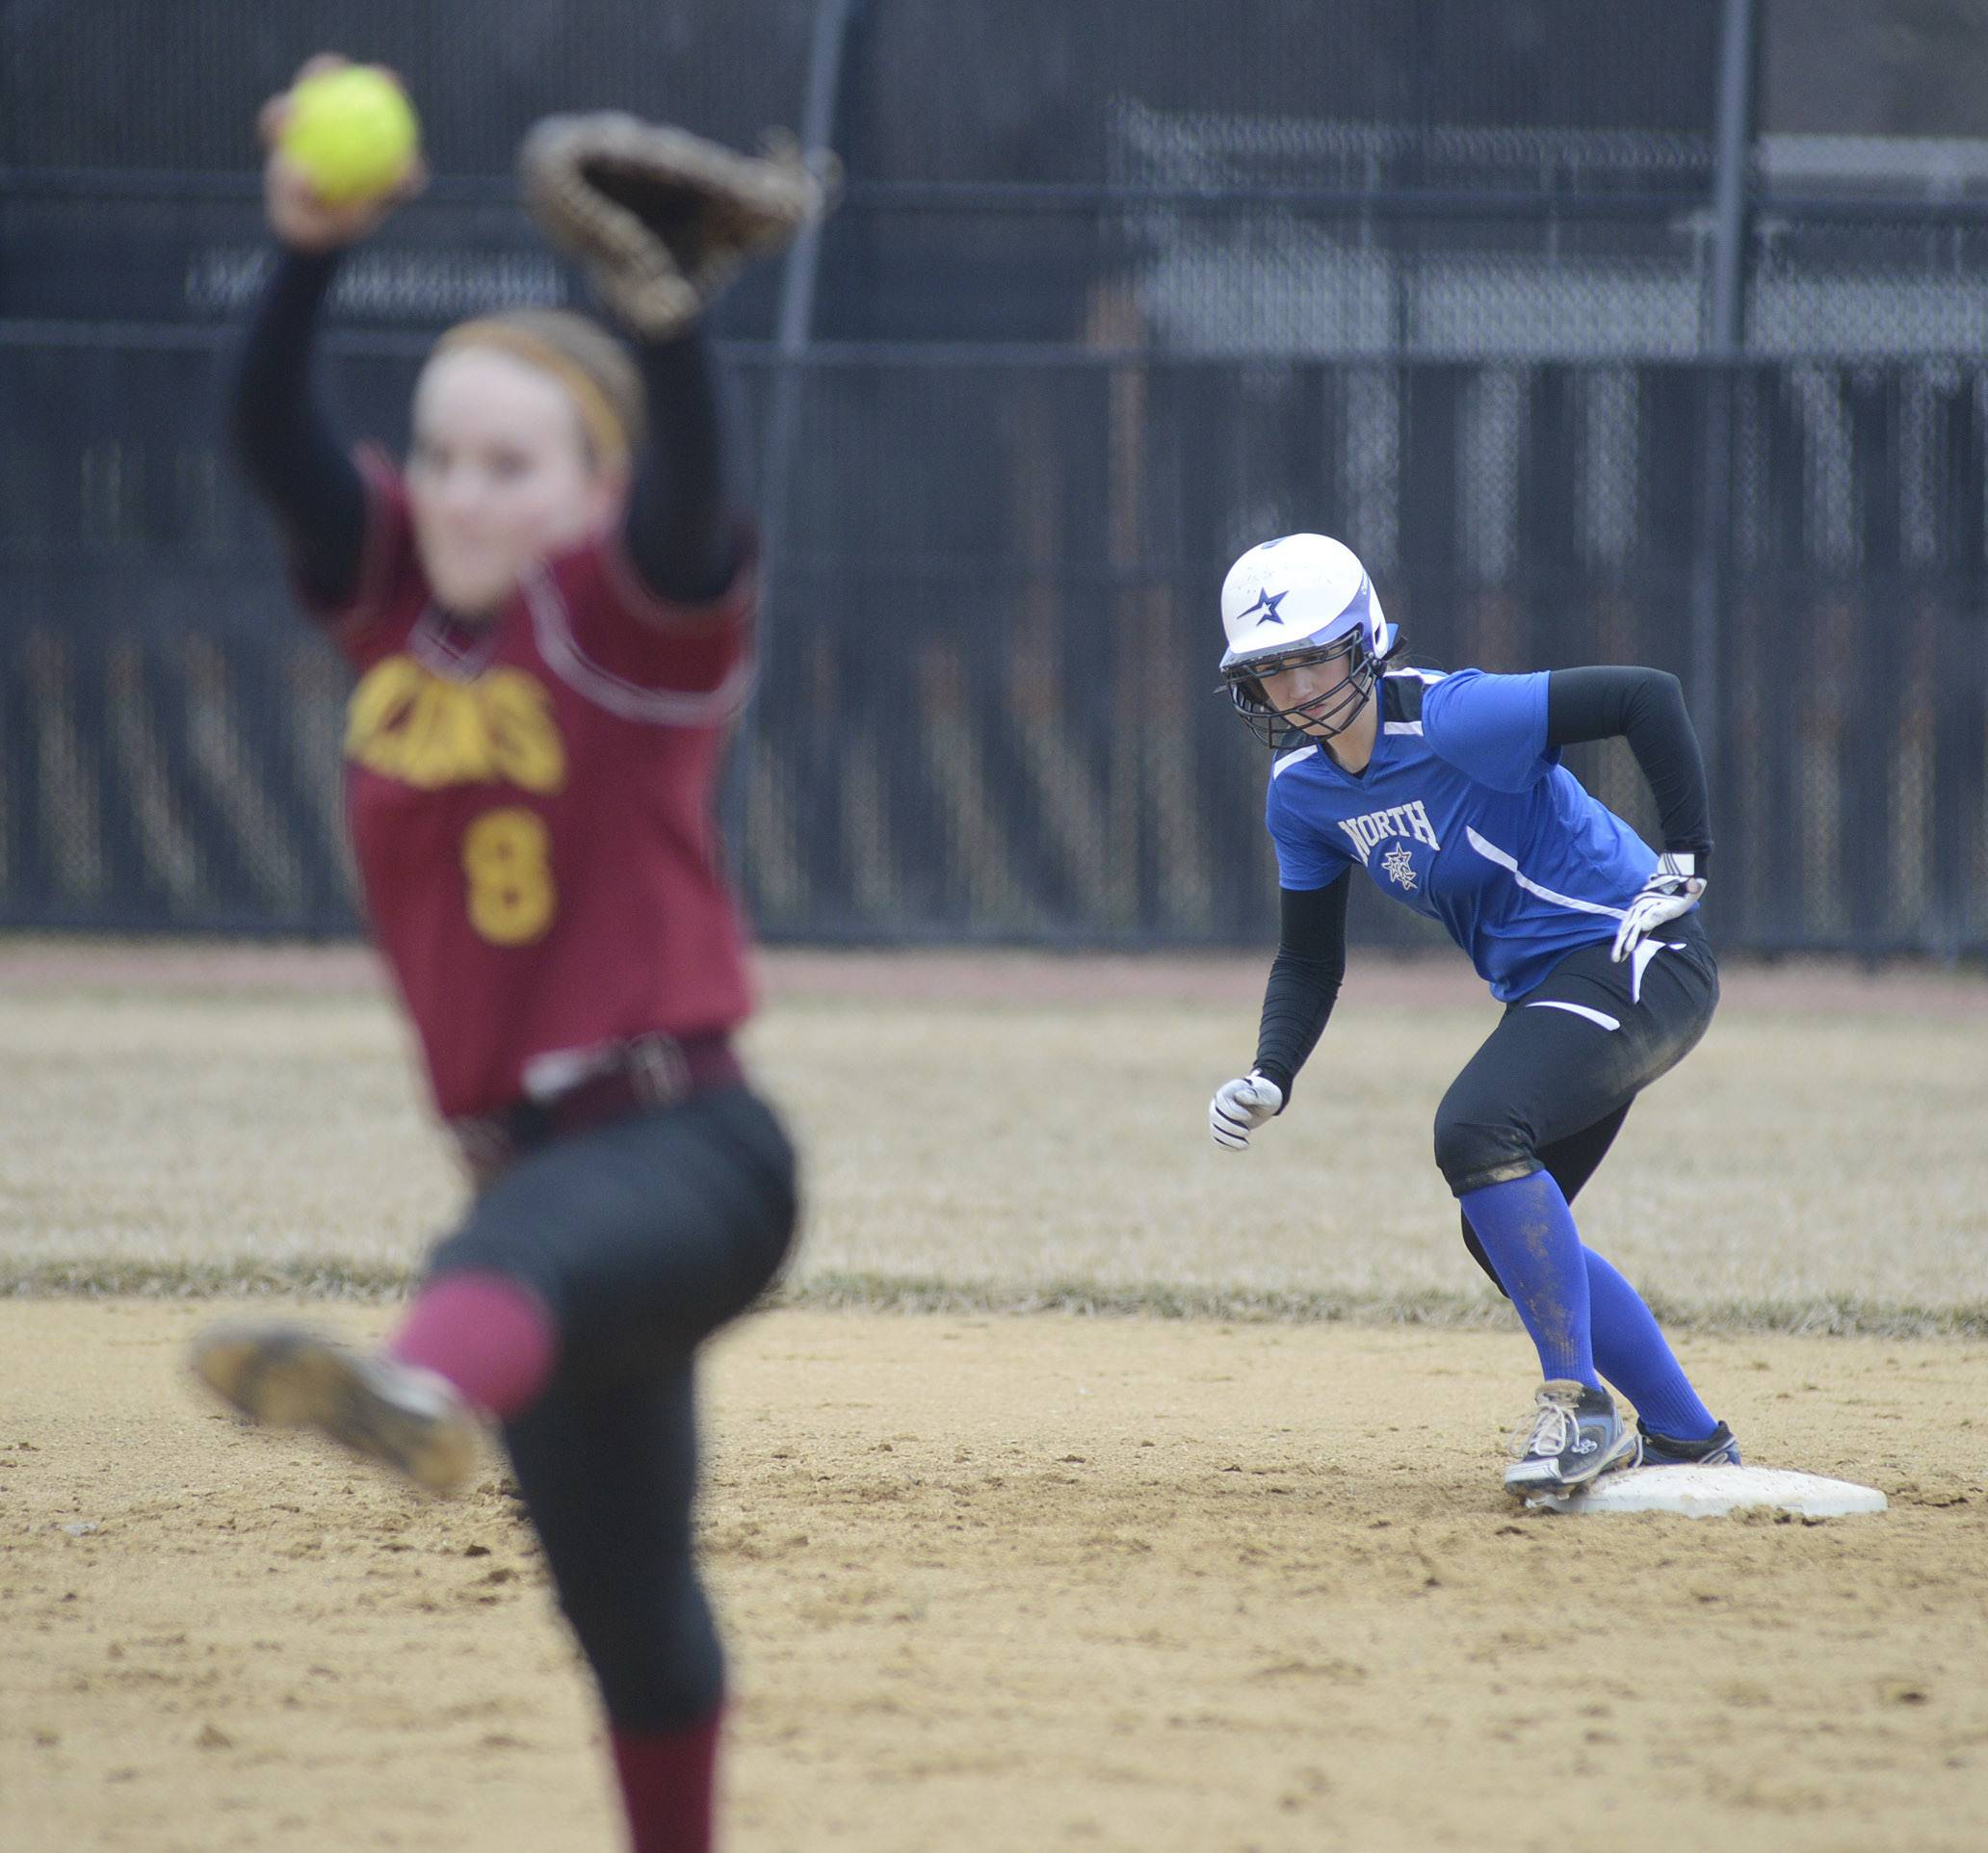 Laura Stoecker/lstoecker@dailyherald.comSchaumburg's Roxanne Kakareka pitches while St. Charles North's Abby Howlett leans off second base in the fourth inning on Wednesday, April 2.